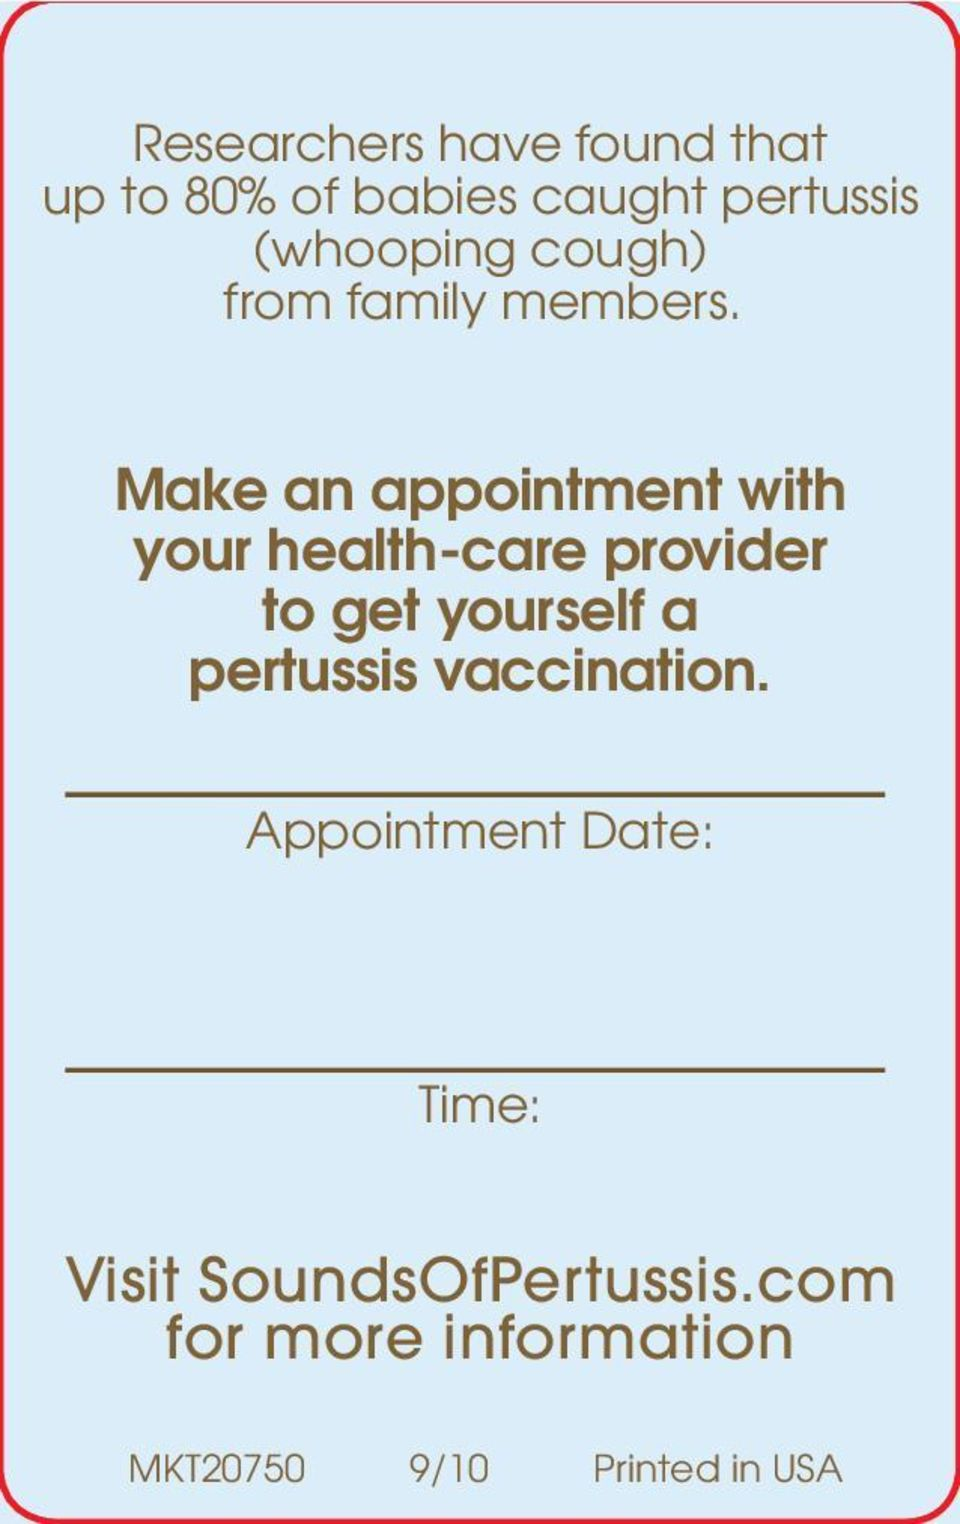 Make an appointment with your health-care provider to get yourself a